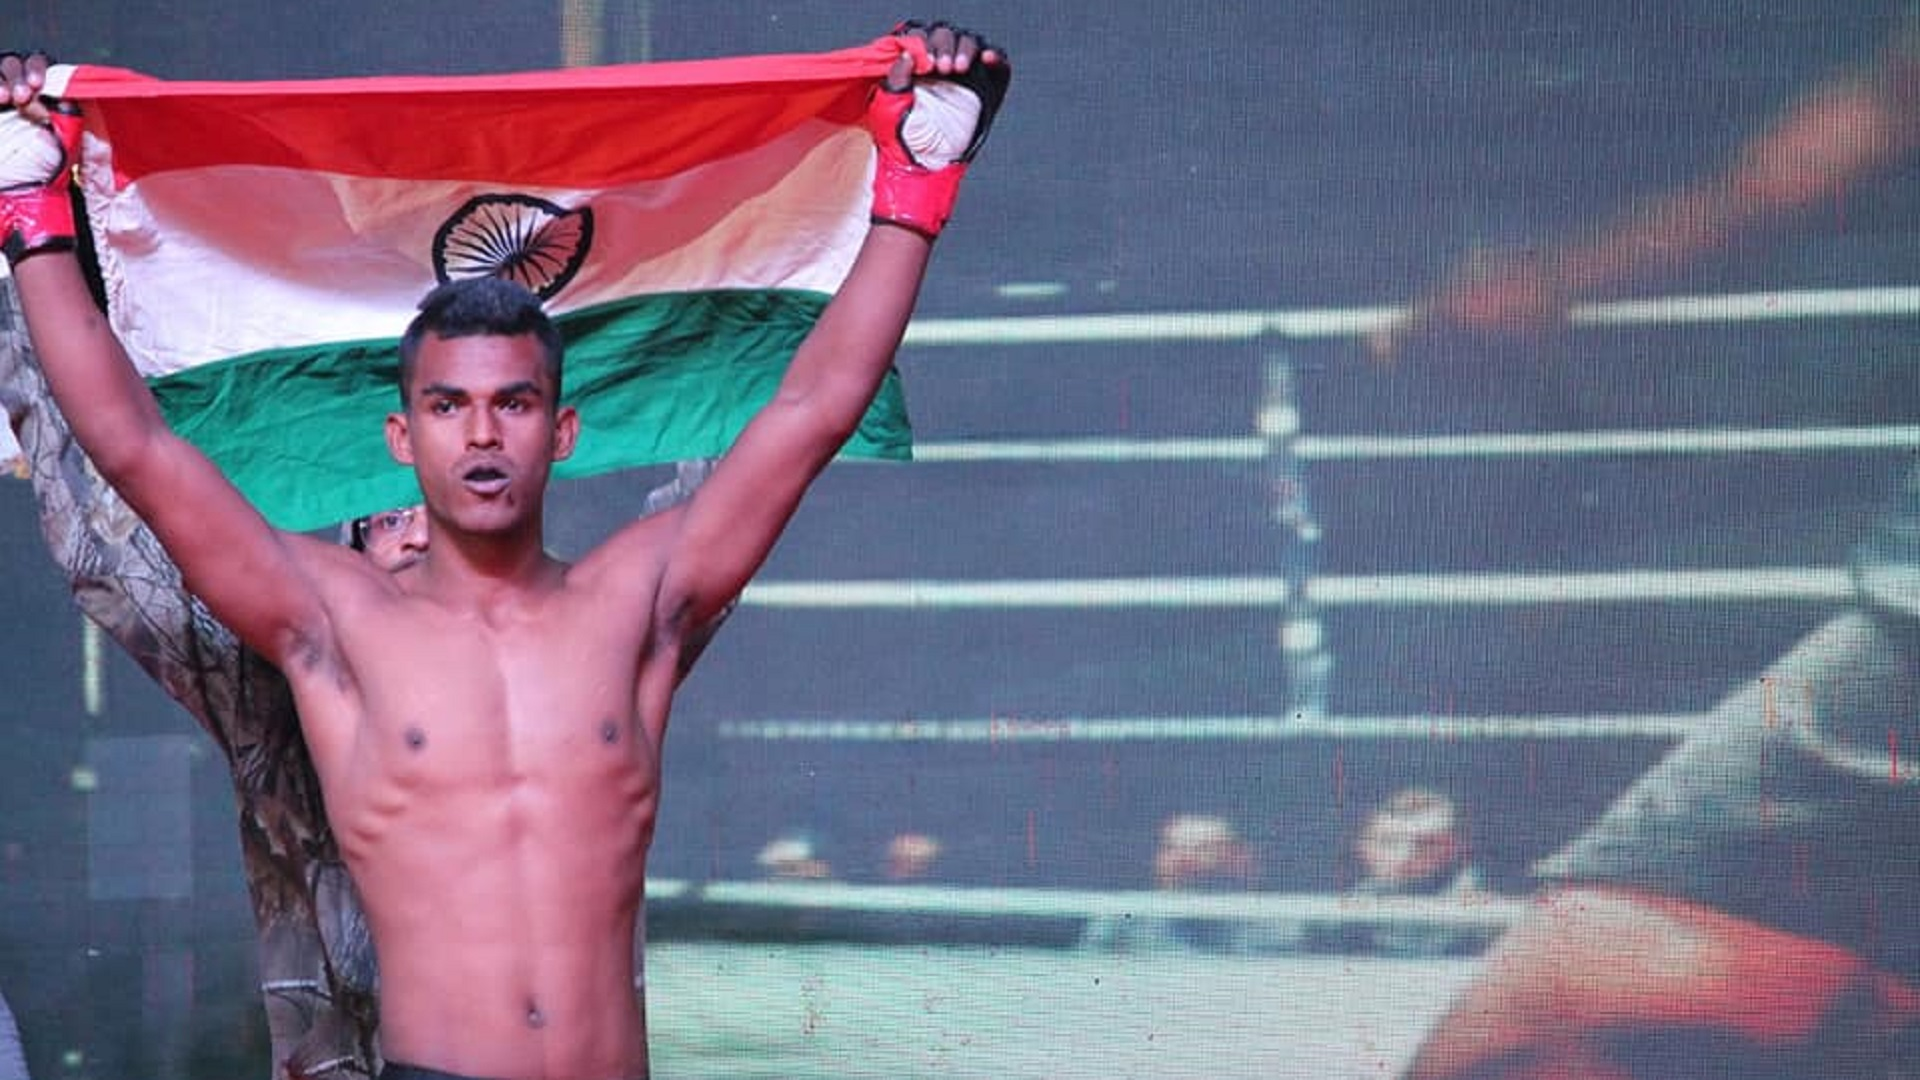 https://lockerroom.in/blog/view/Palghar-Fighting-League-Fight-Card-Results